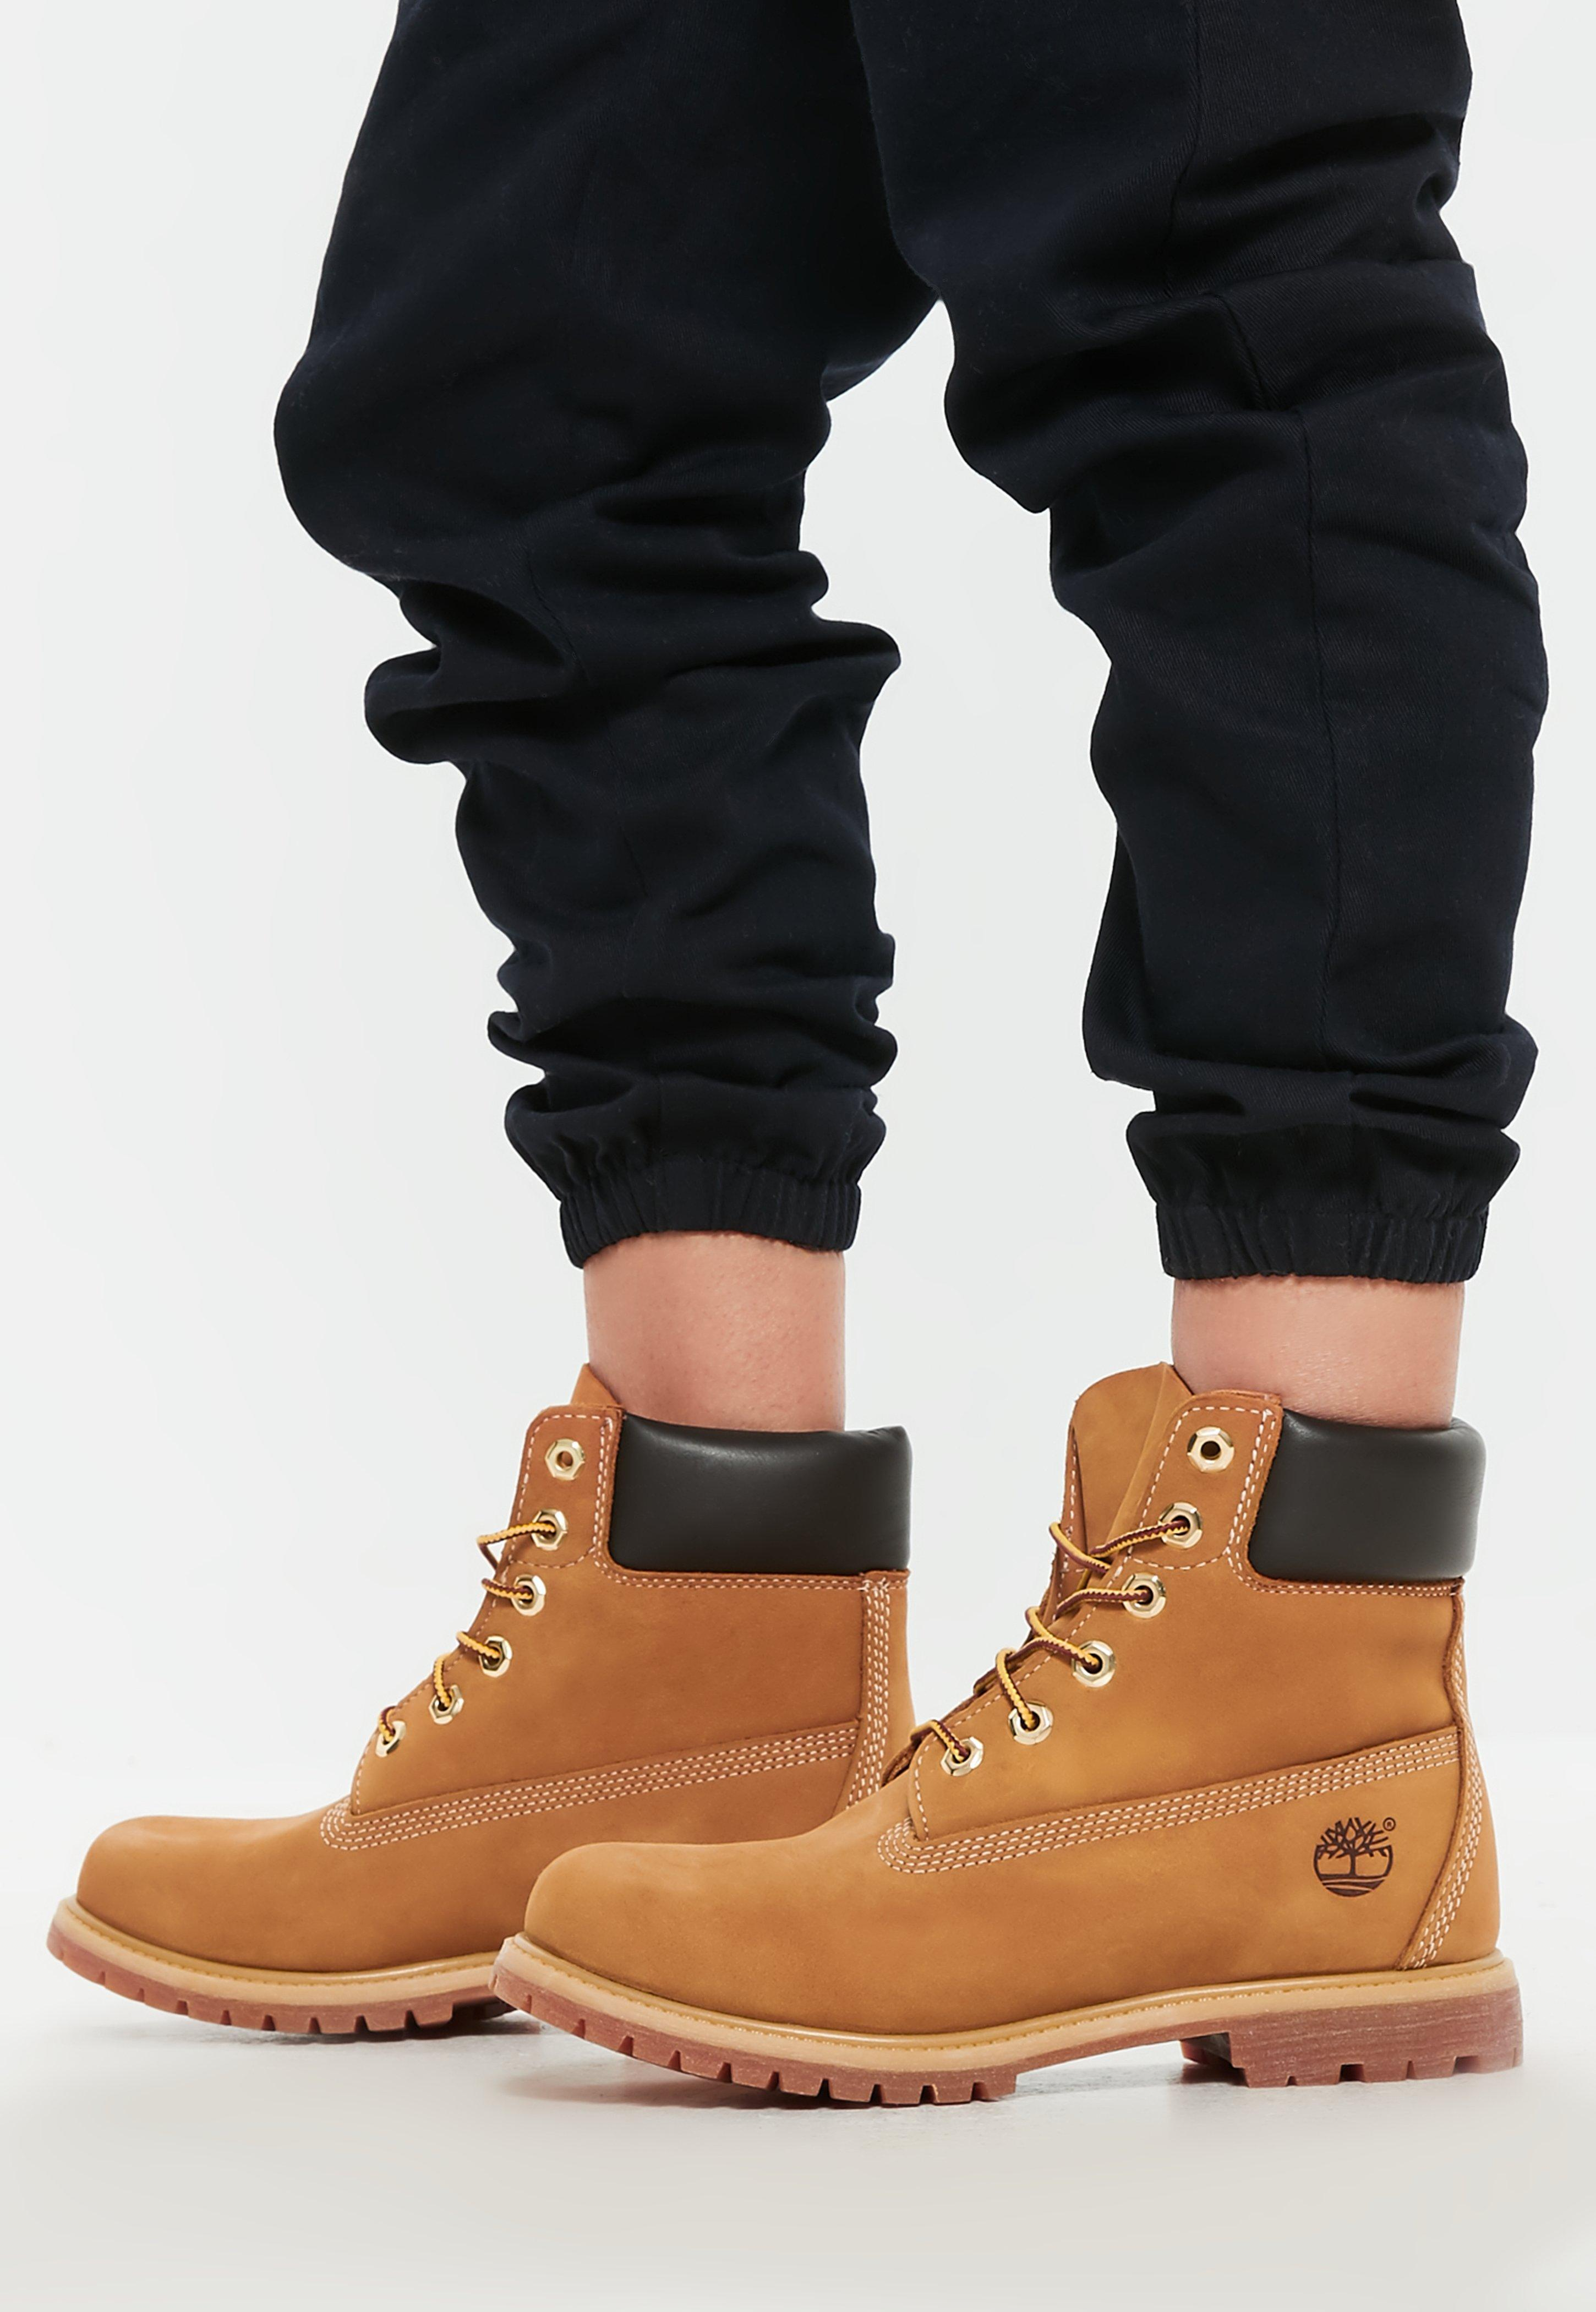 Missguided Timberland 6 Inch Waterbuck Boots Clearance Huge Surprise Discount Cheap Sale Prices Sale Online jENY9lu